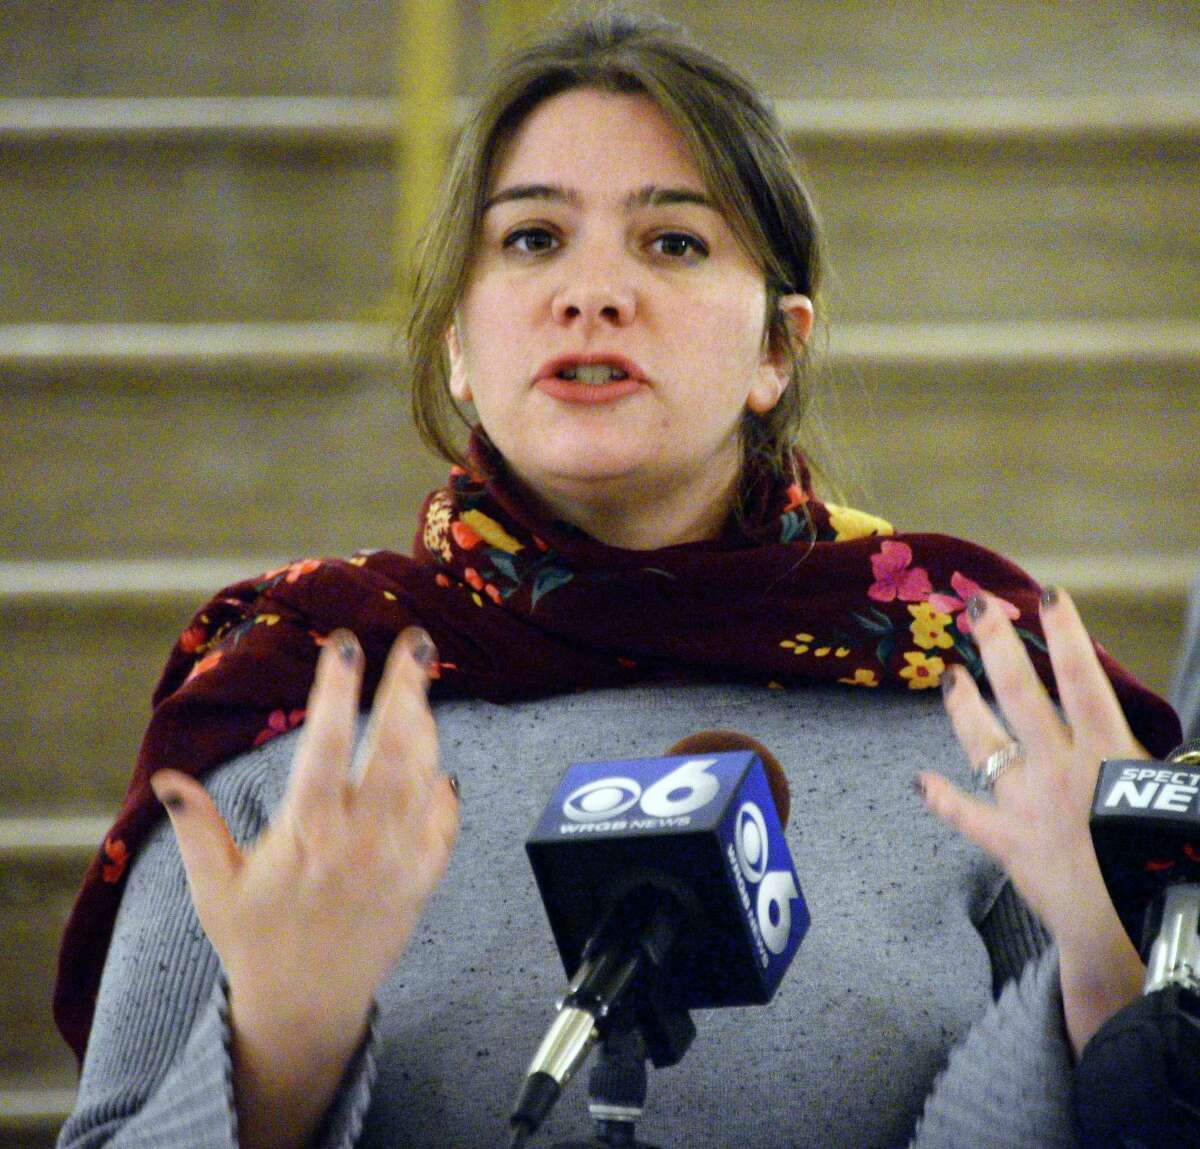 Camille Mackler, director of immigration policy at the New York Immigration Coalition speaks during a news conference to announce the details of a new program designed to assist the immigration population currently being housed at the Albany County Correctional Facility Wednesday Nov. 14, 2018 in Albany, NY. (John Carl D'Annibale/Times Union)